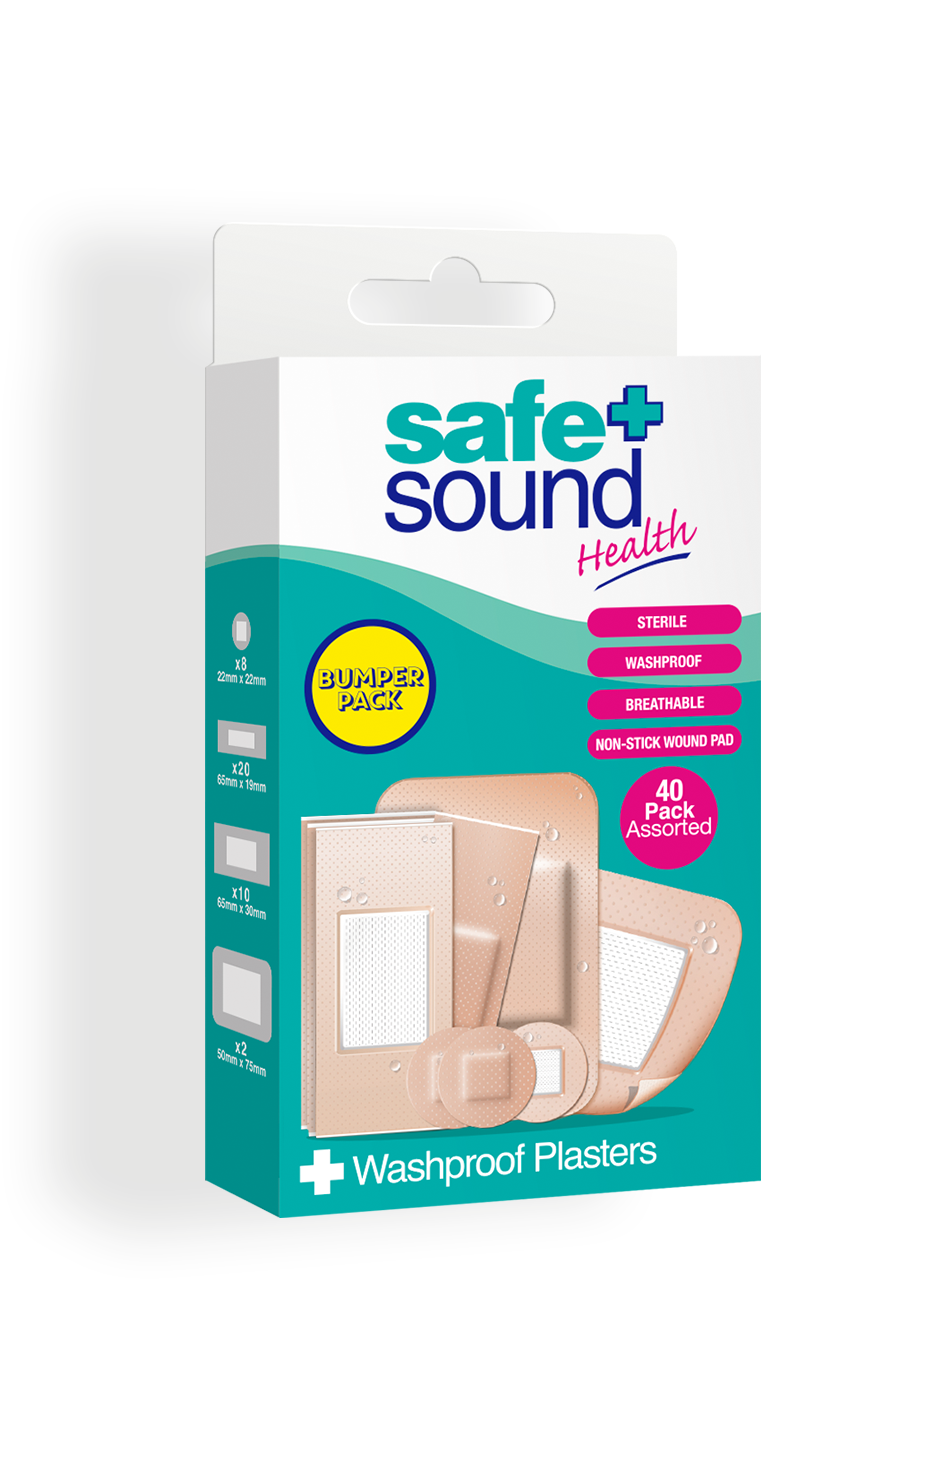 Safe and Sound Health pack of 40 Assorted Washproof Plasters